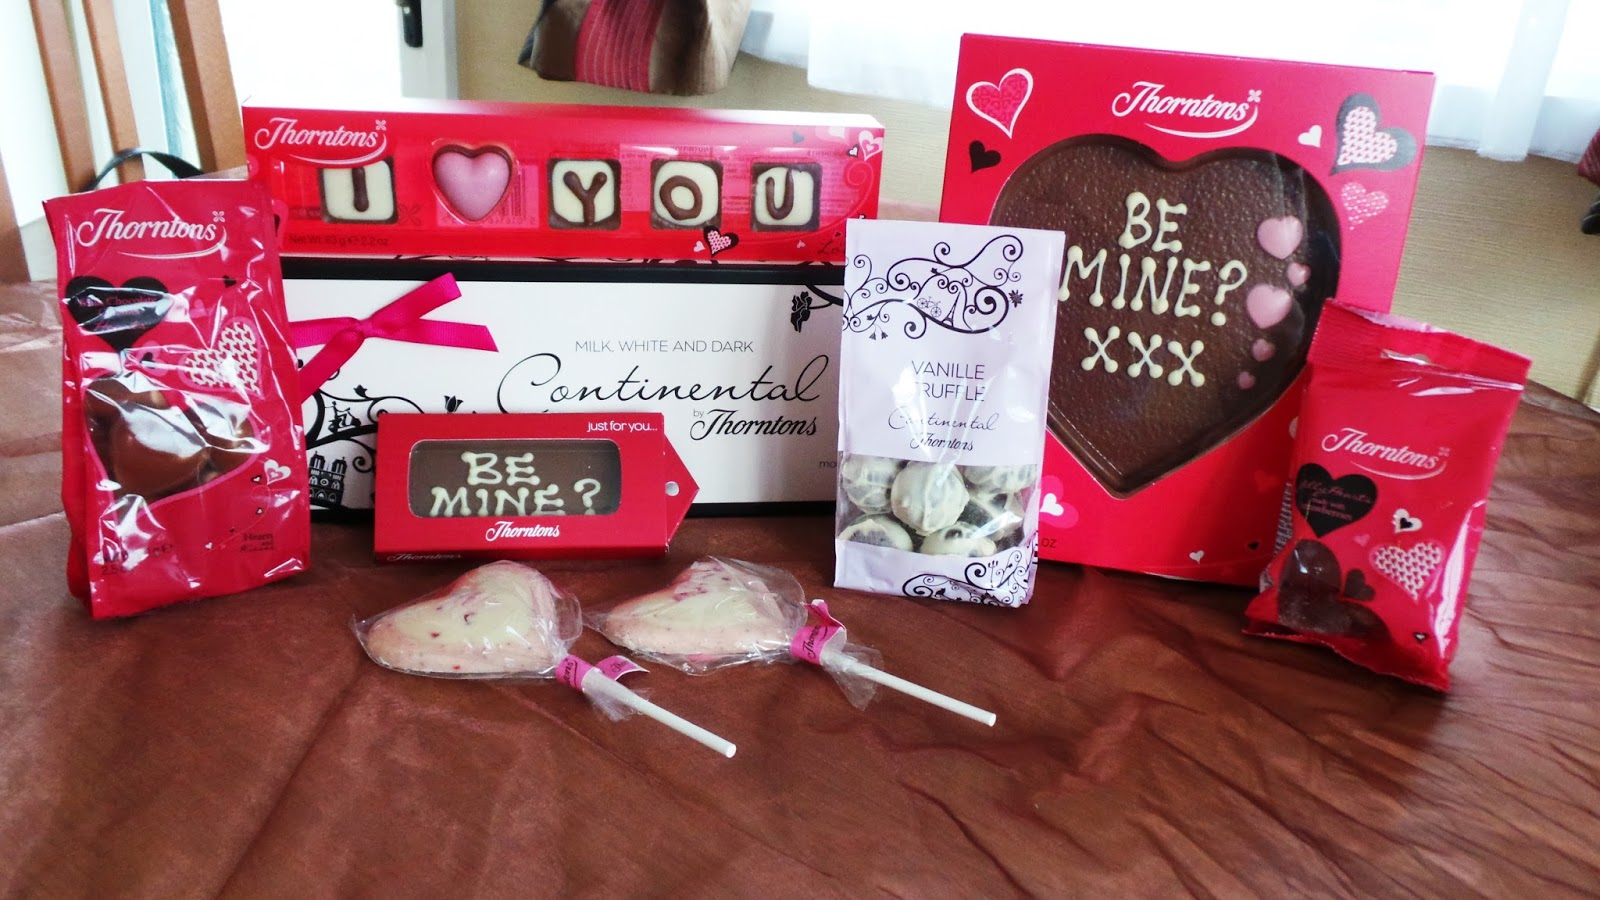 Thorntons Love You More Than Chocolate Gift